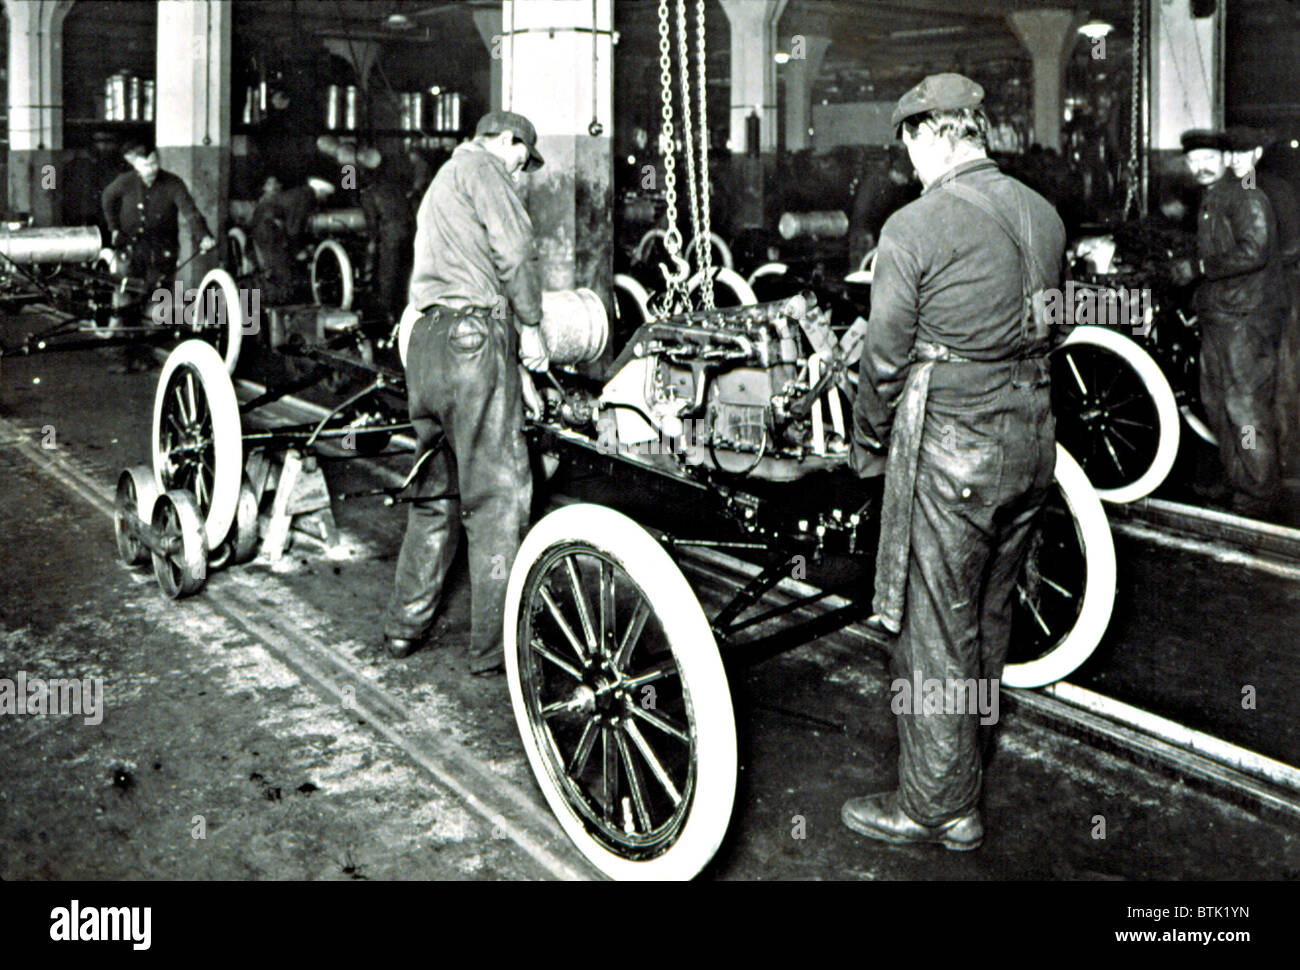 Motor history stock photos motor history stock images for Ford motor stock price history